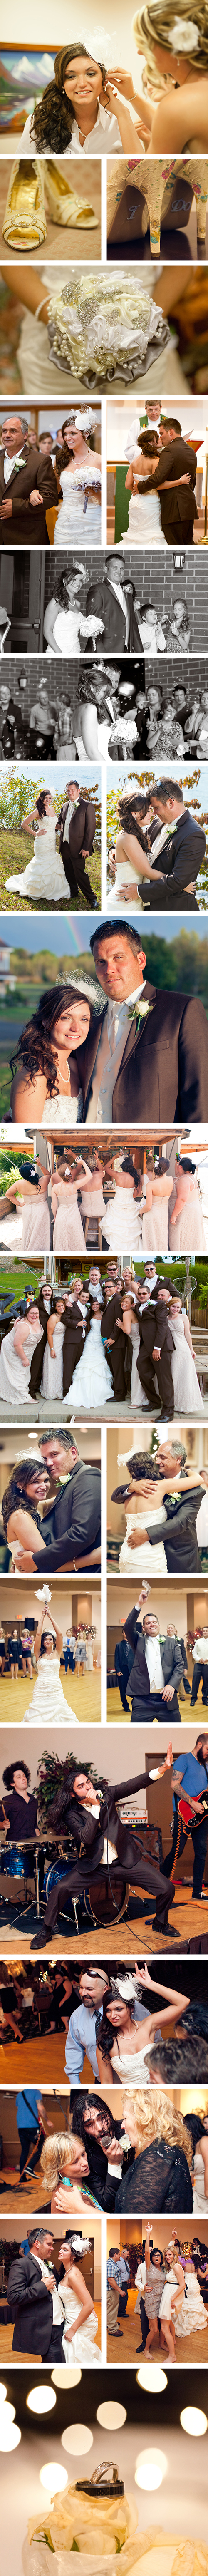 Richelle and Kyle Reeber Wedding, schuylkill county, Emily McGonigle Photography, Bethlehem, Pa